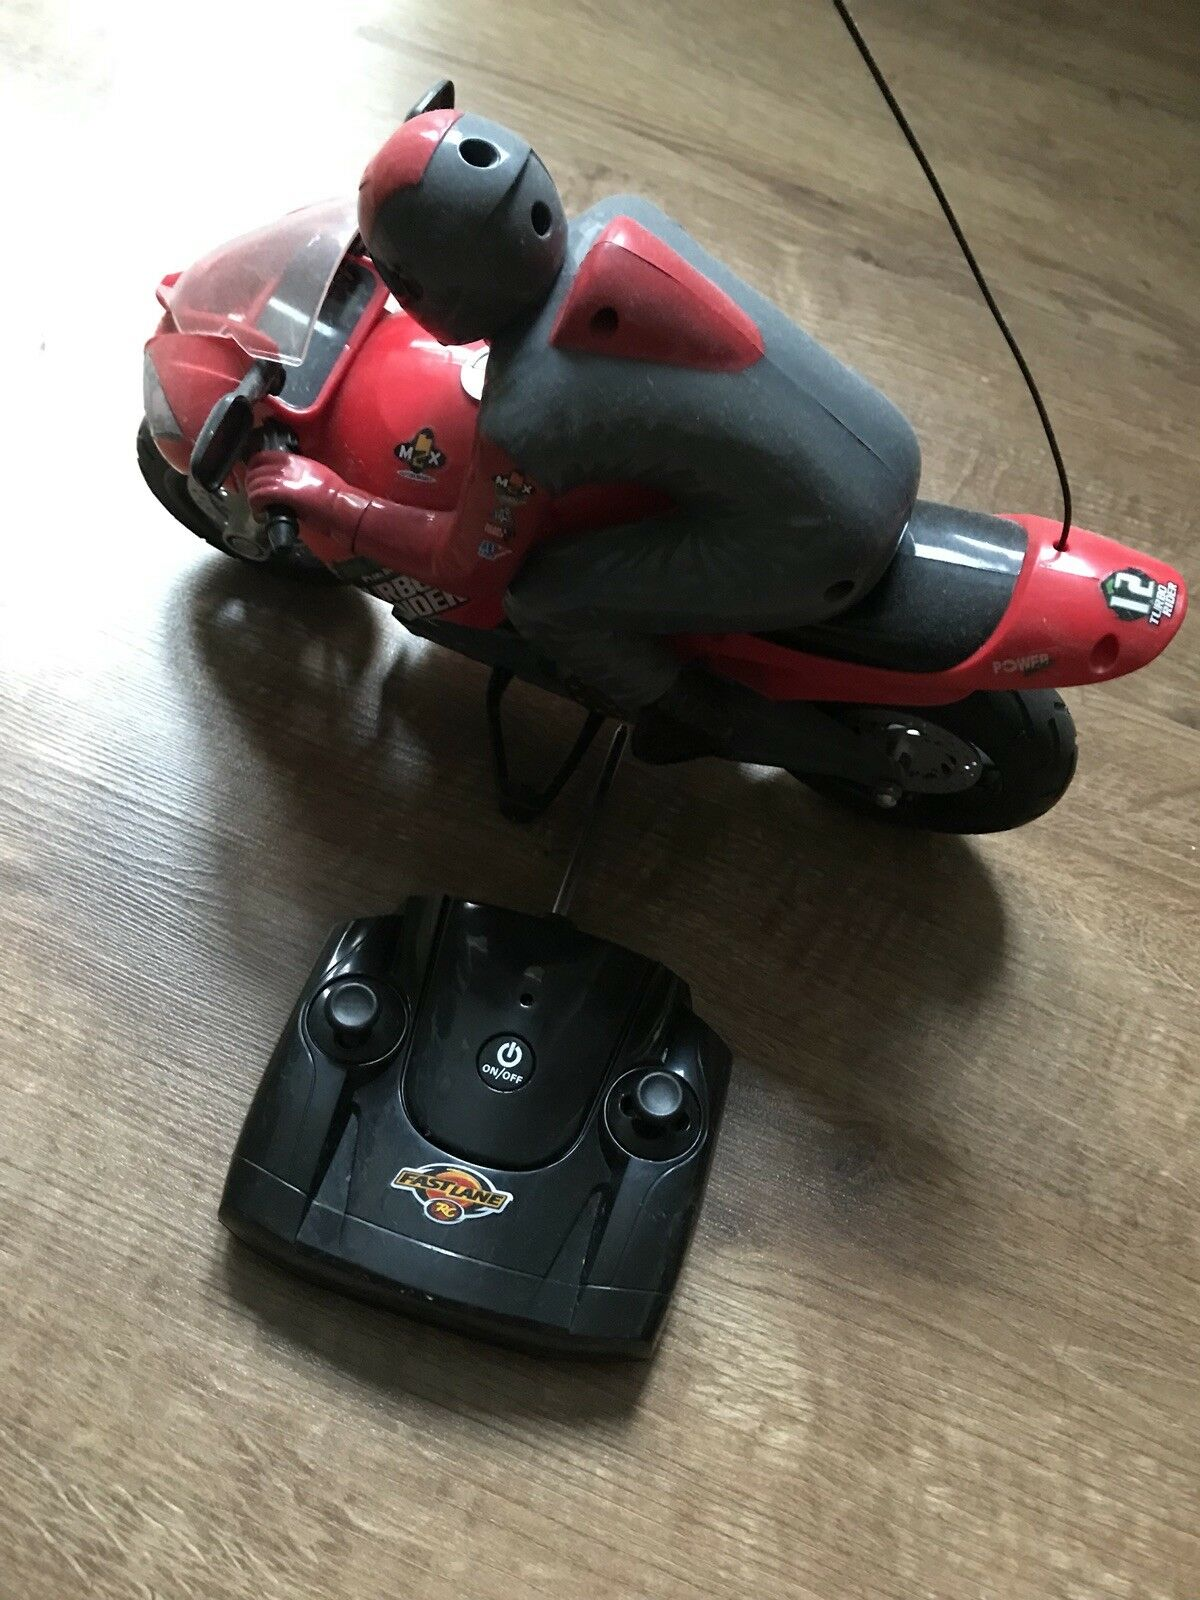 Turbo Rider Remote Control Fast Speed Motorbike Battery Operated Red Motorcycle